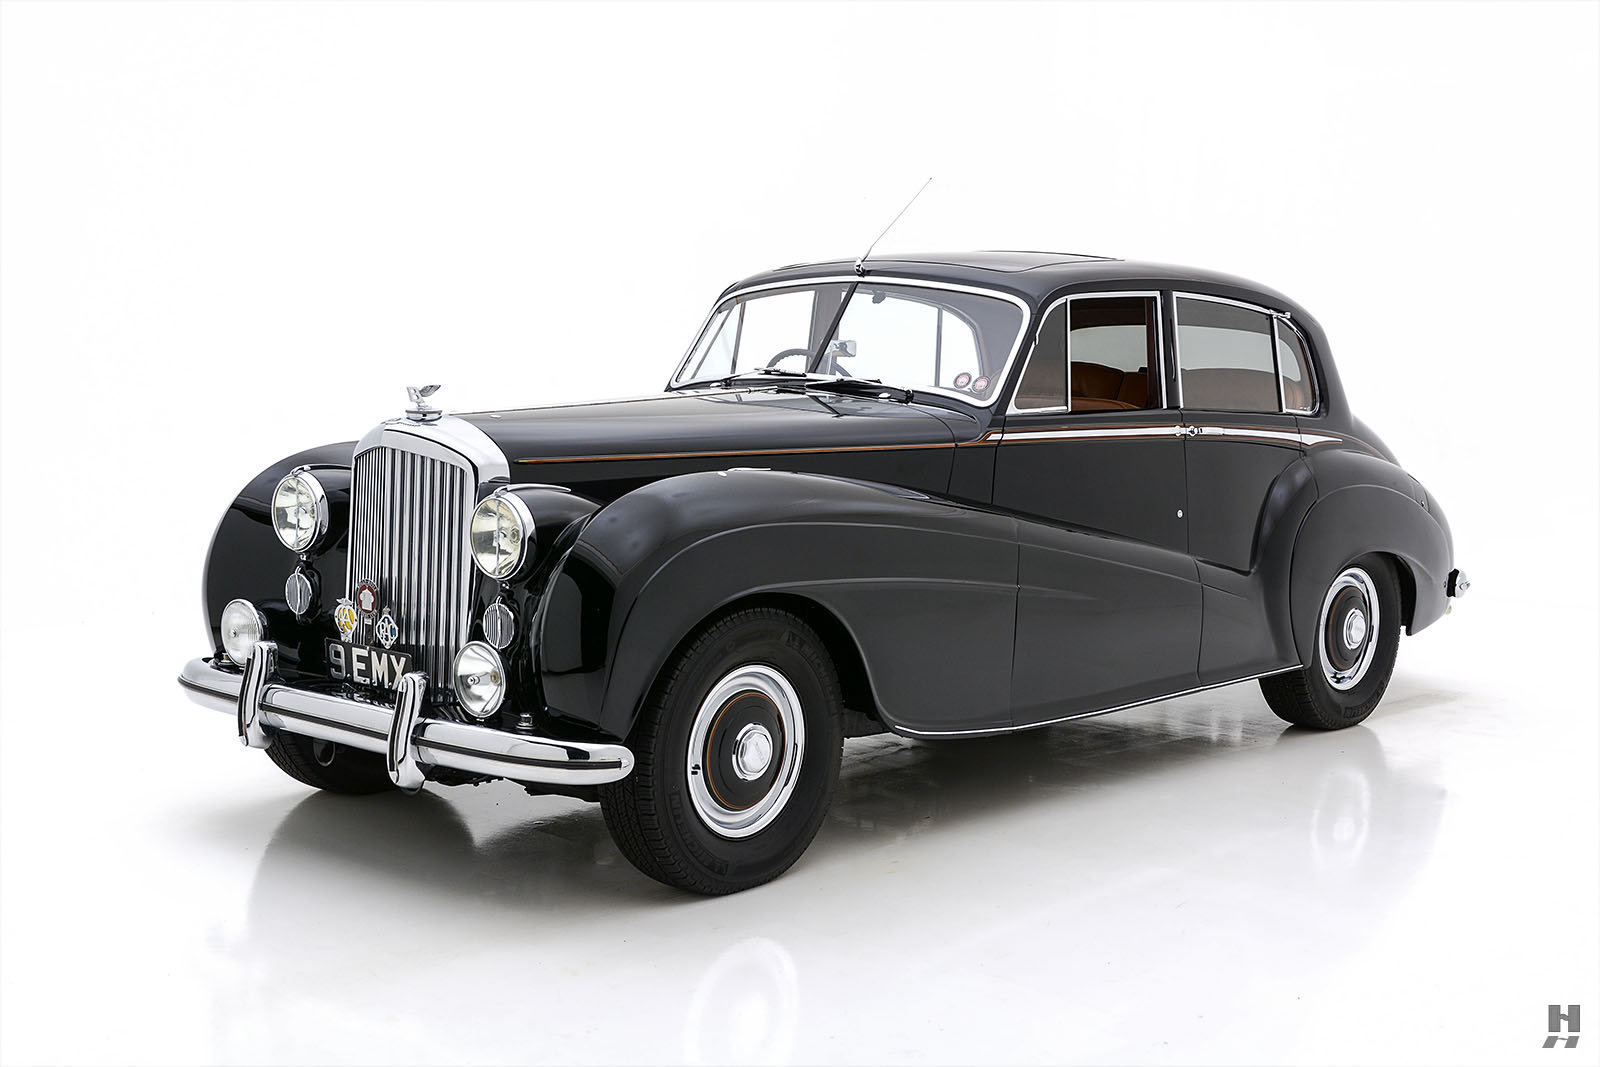 1951 BENTLEY MARK VI MULLINER LIGHTWEIGHT SPORTS SALOON For Sale (picture 1 of 6)